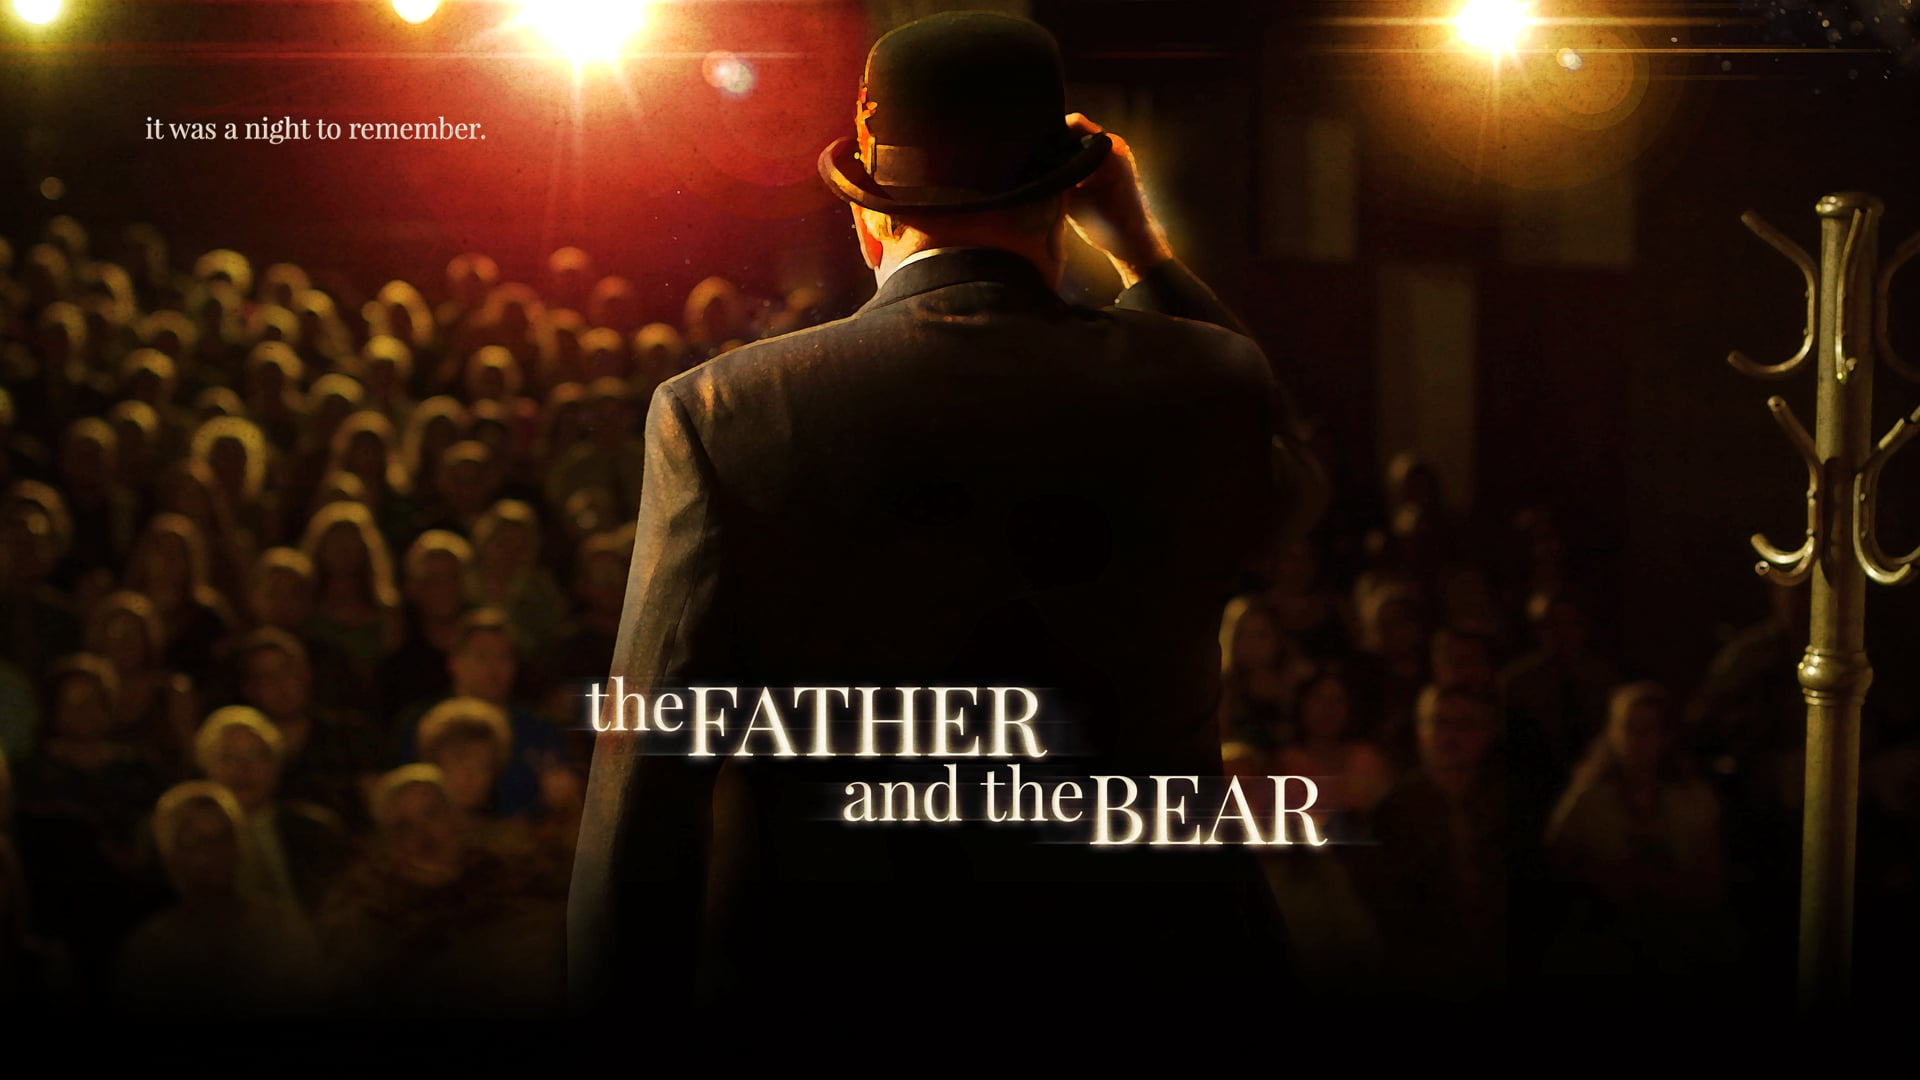 THE FATHER & THE BEAR - Trailer